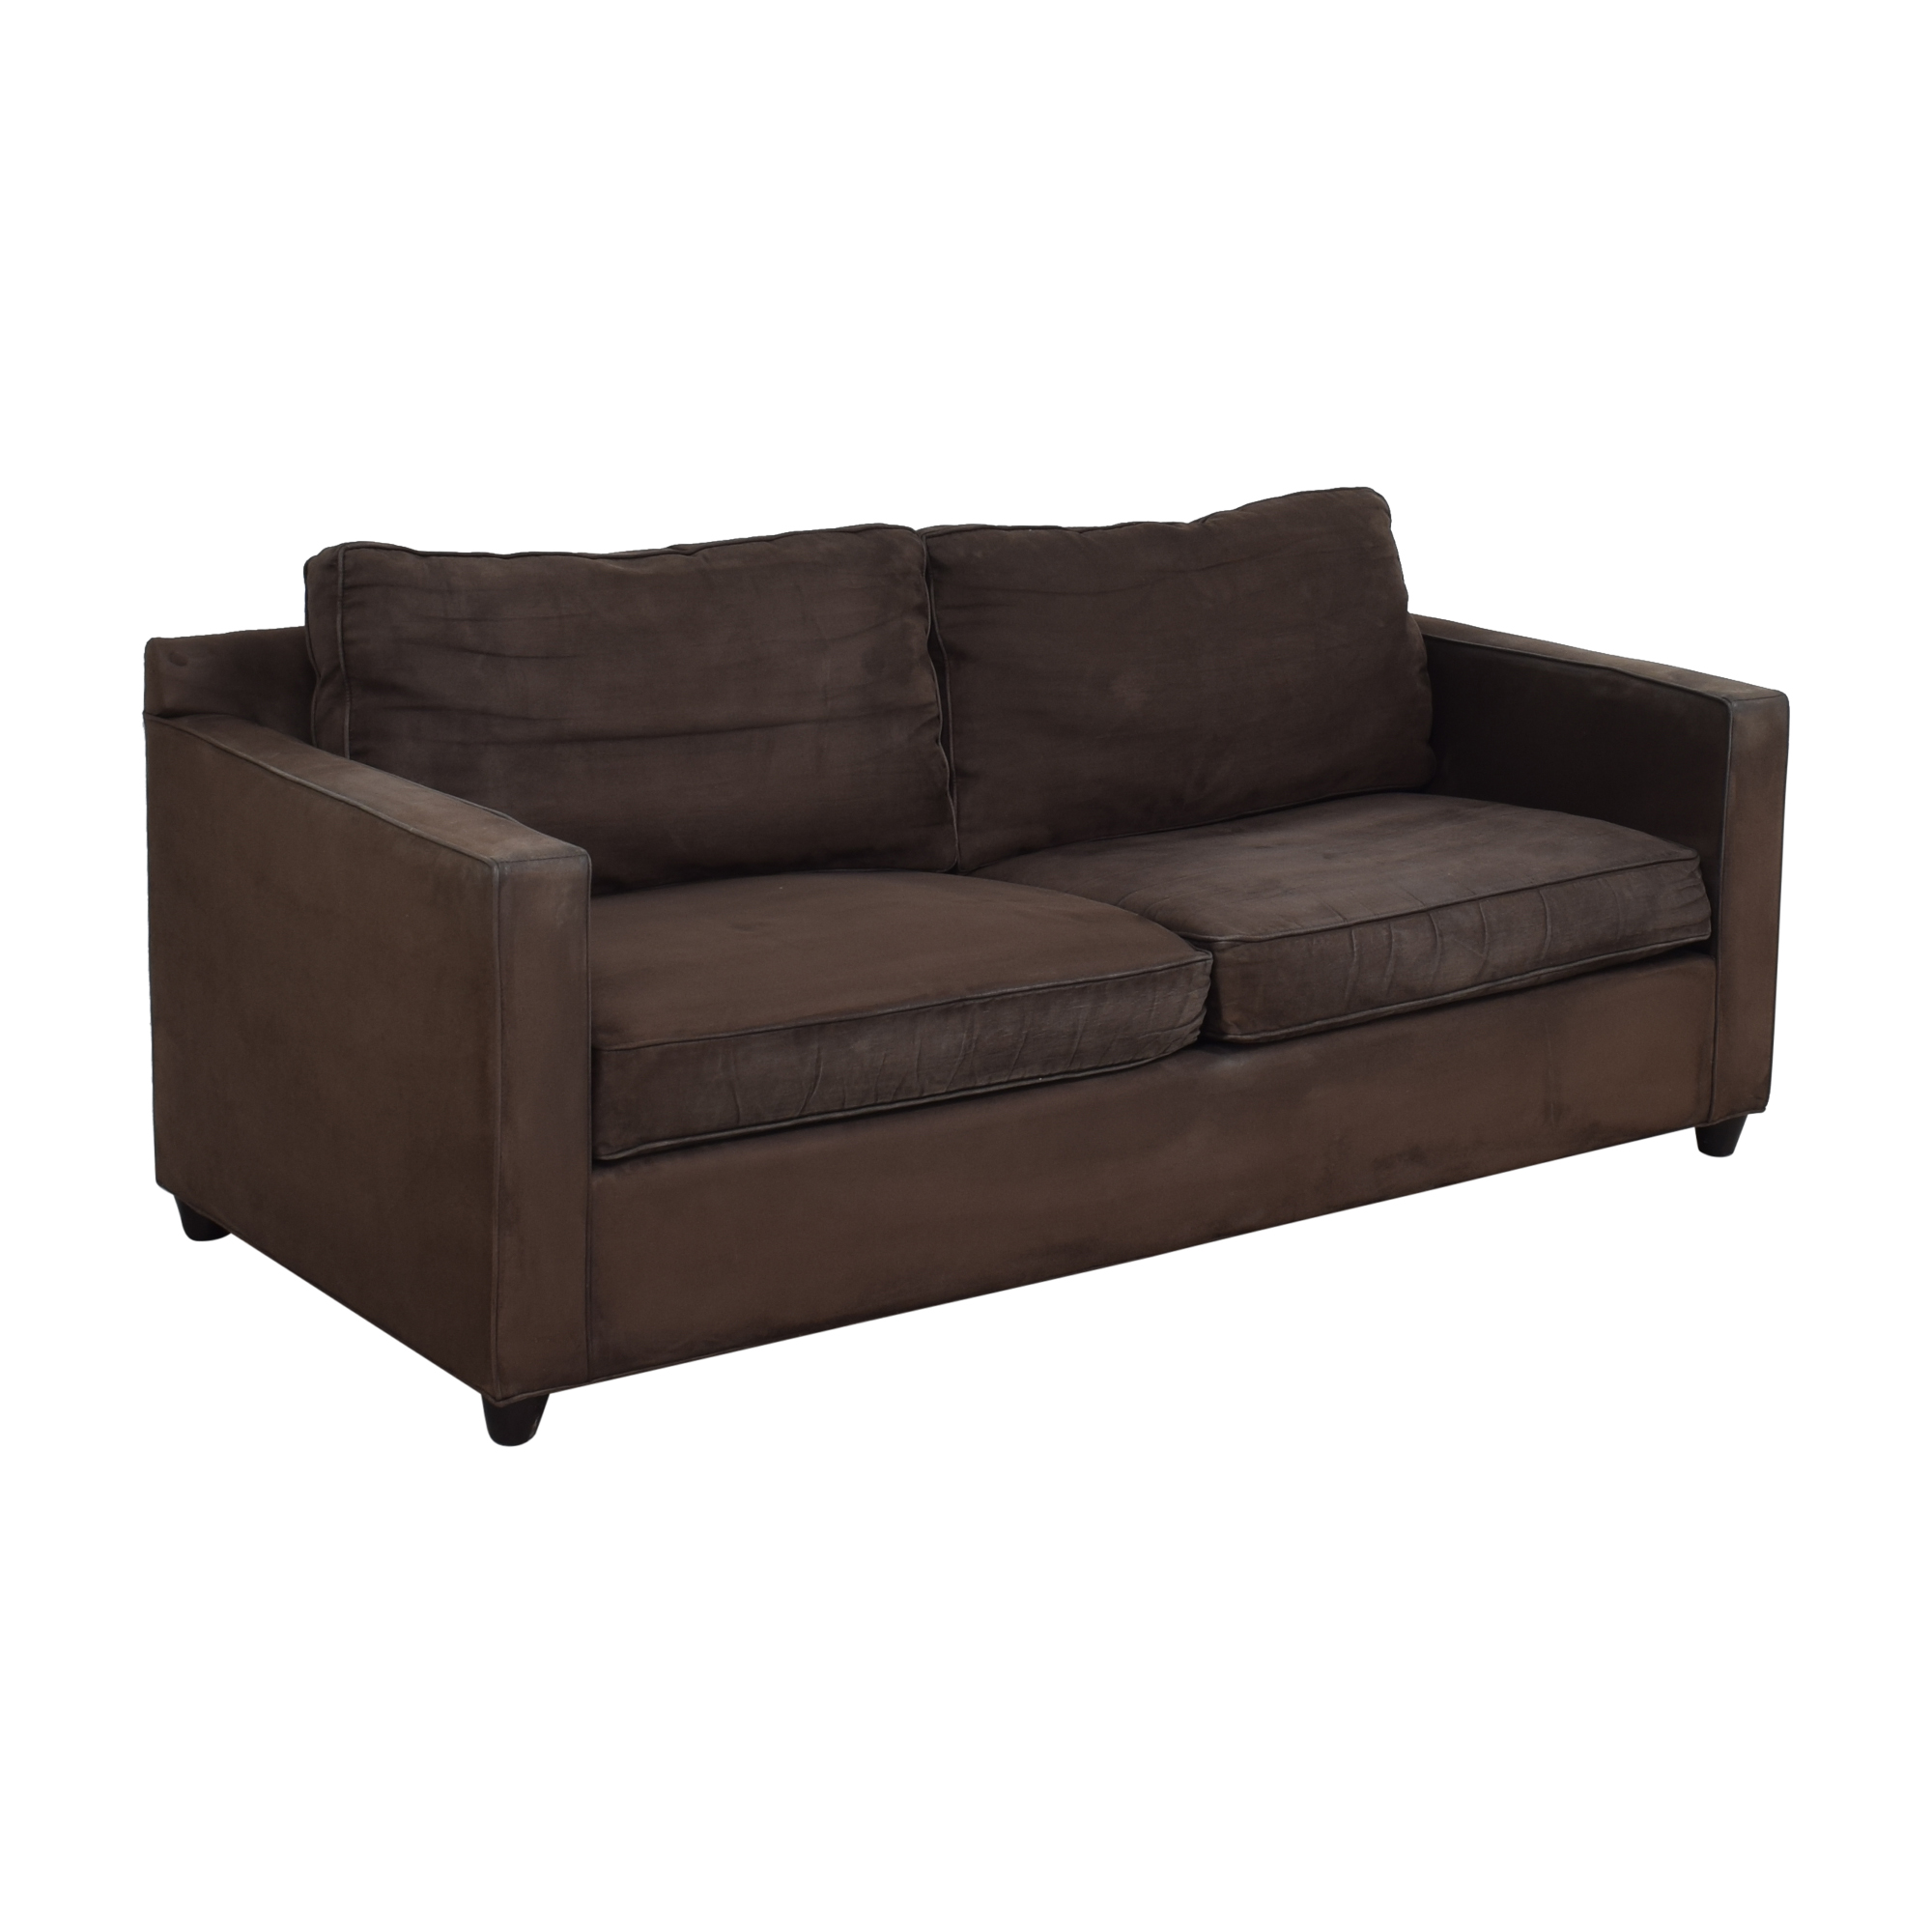 Crate & Barrel Crate & Barrel Troy Sofa Classic Sofas